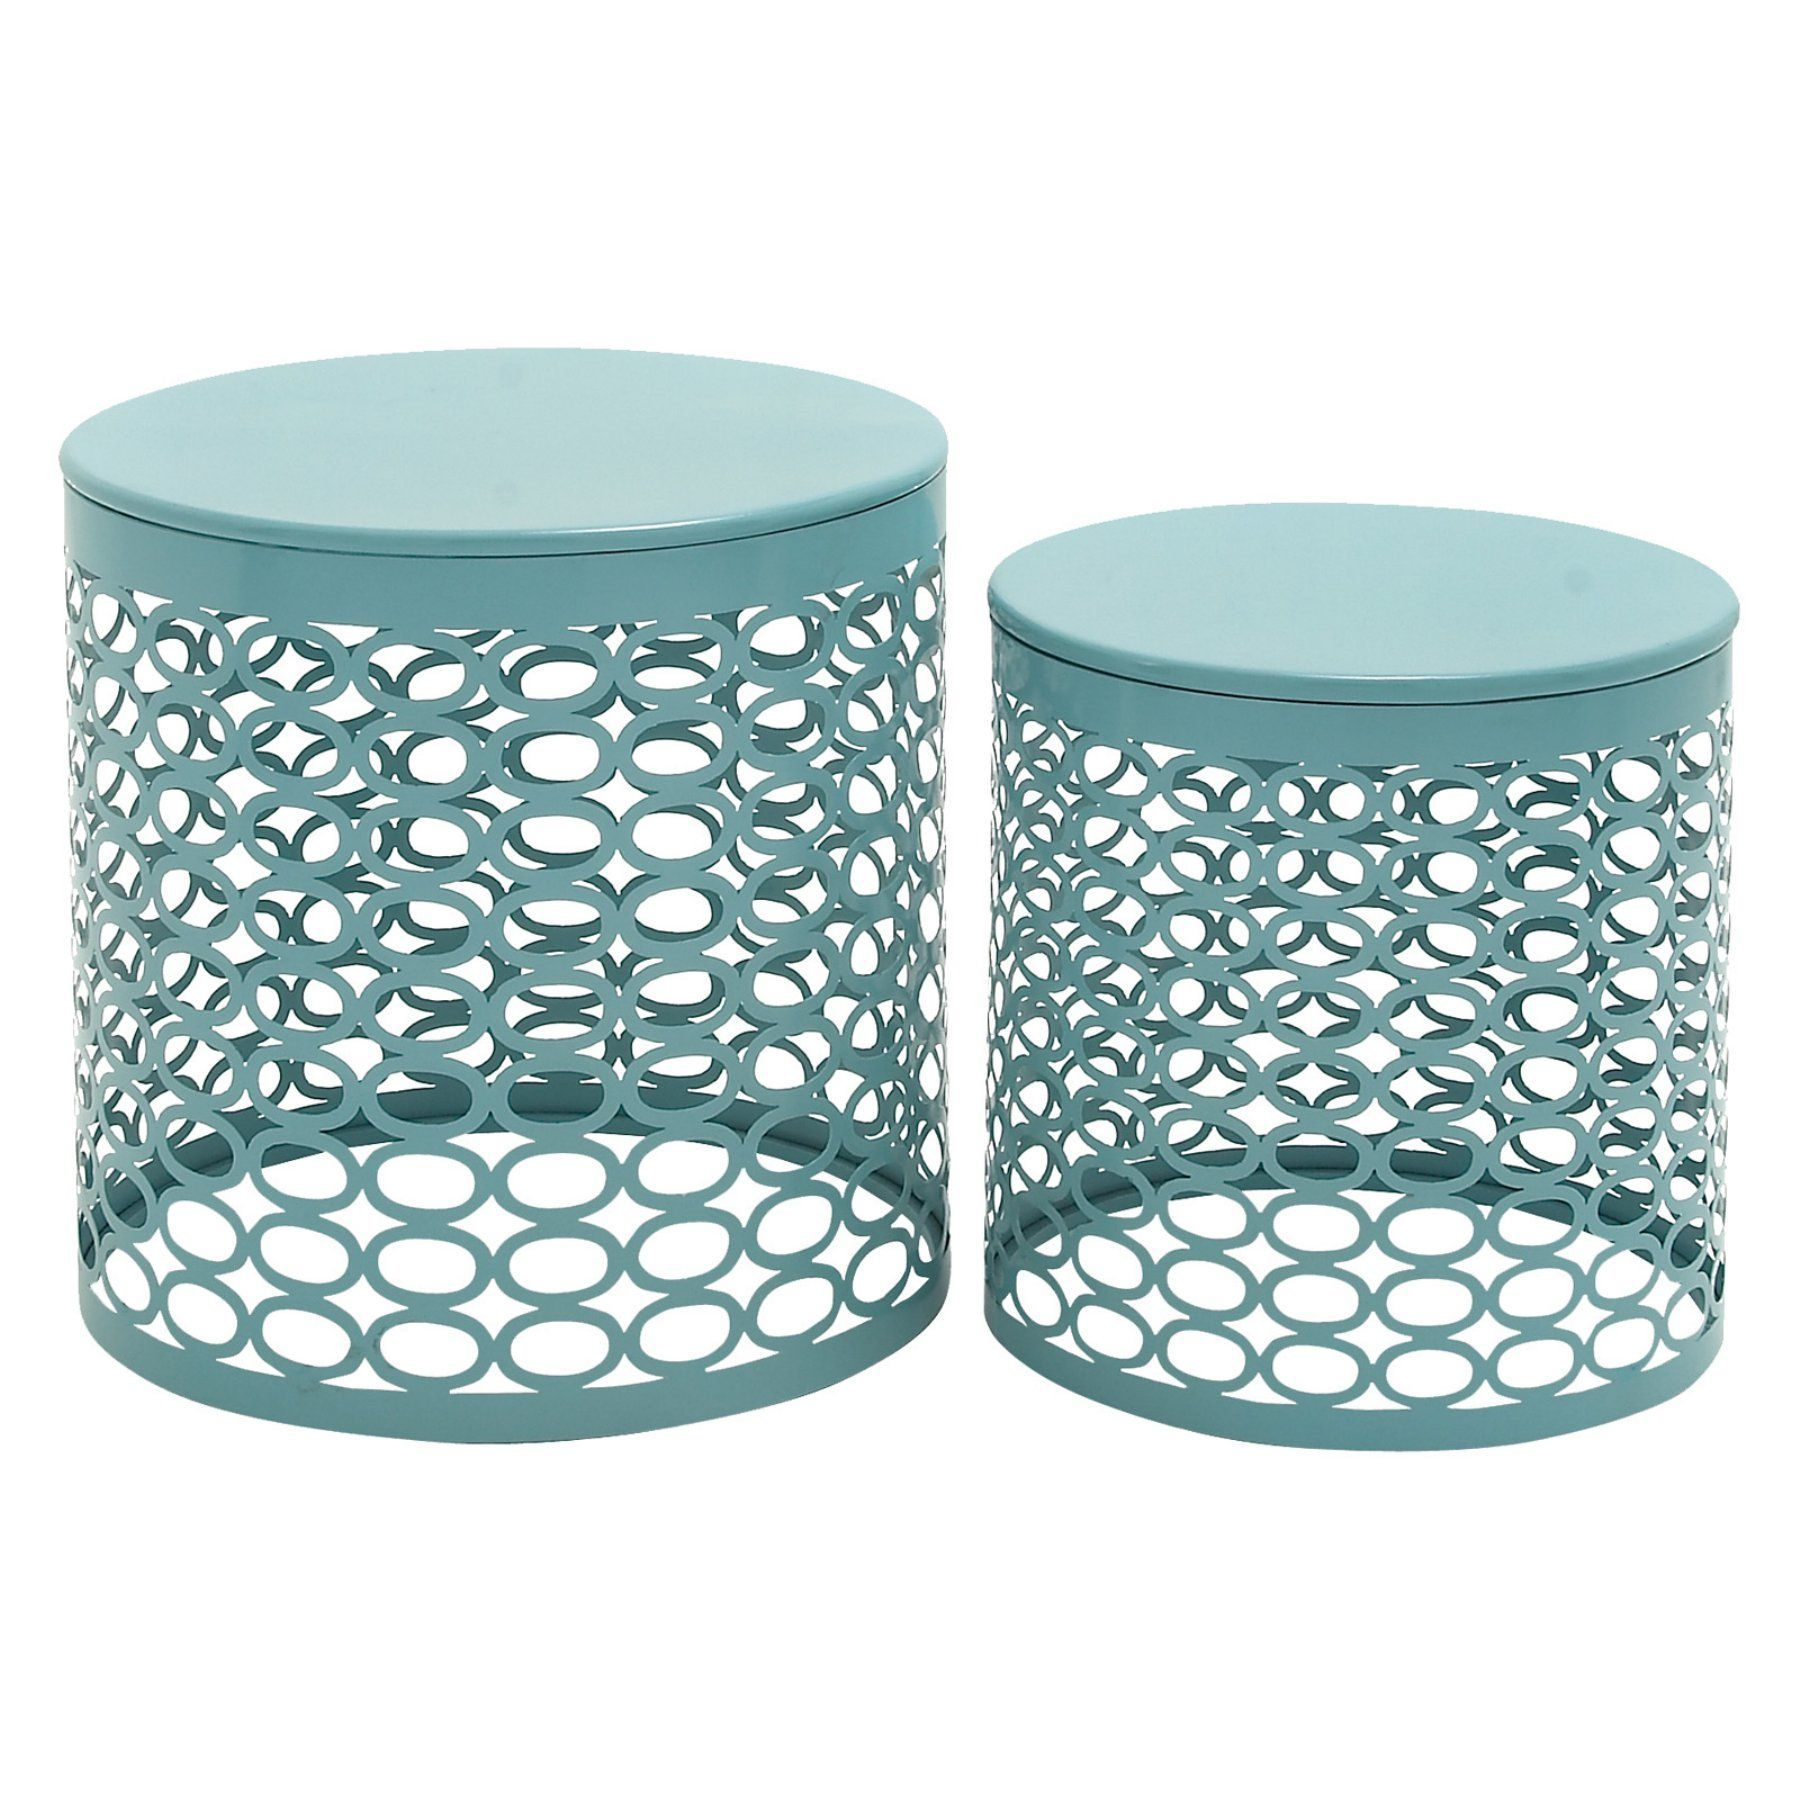 Decmode 17 In Outdoor Accent Tables Set Of 2 Outdoor Accent